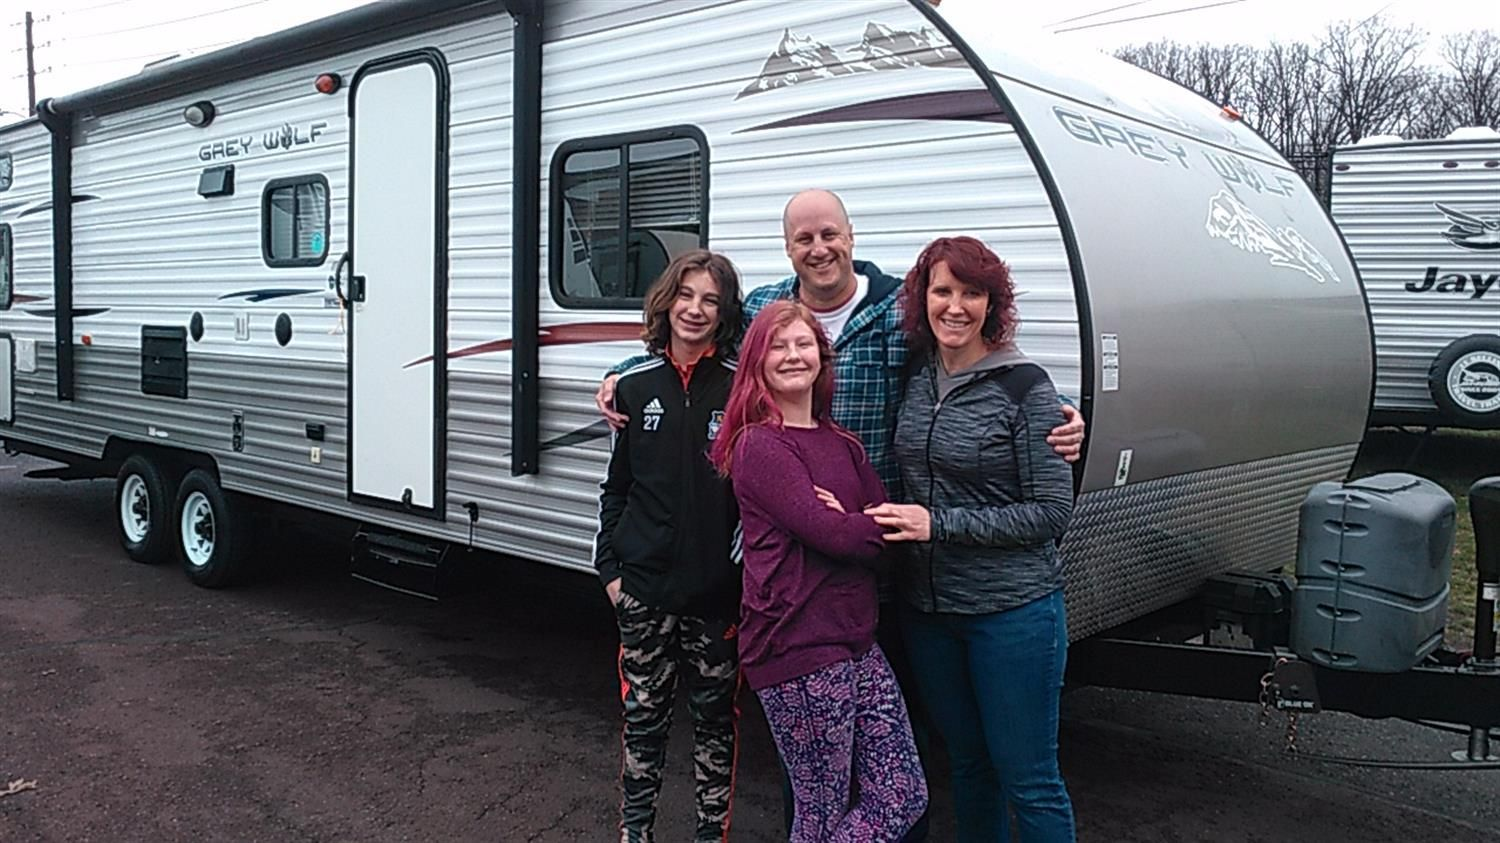 Thank You Jim And Amanda For The Opportunity To Help You With Your New 2013 Forest River Grey Wolf All The Bes In 2020 Forest River Recreational Vehicles Grey Wolf